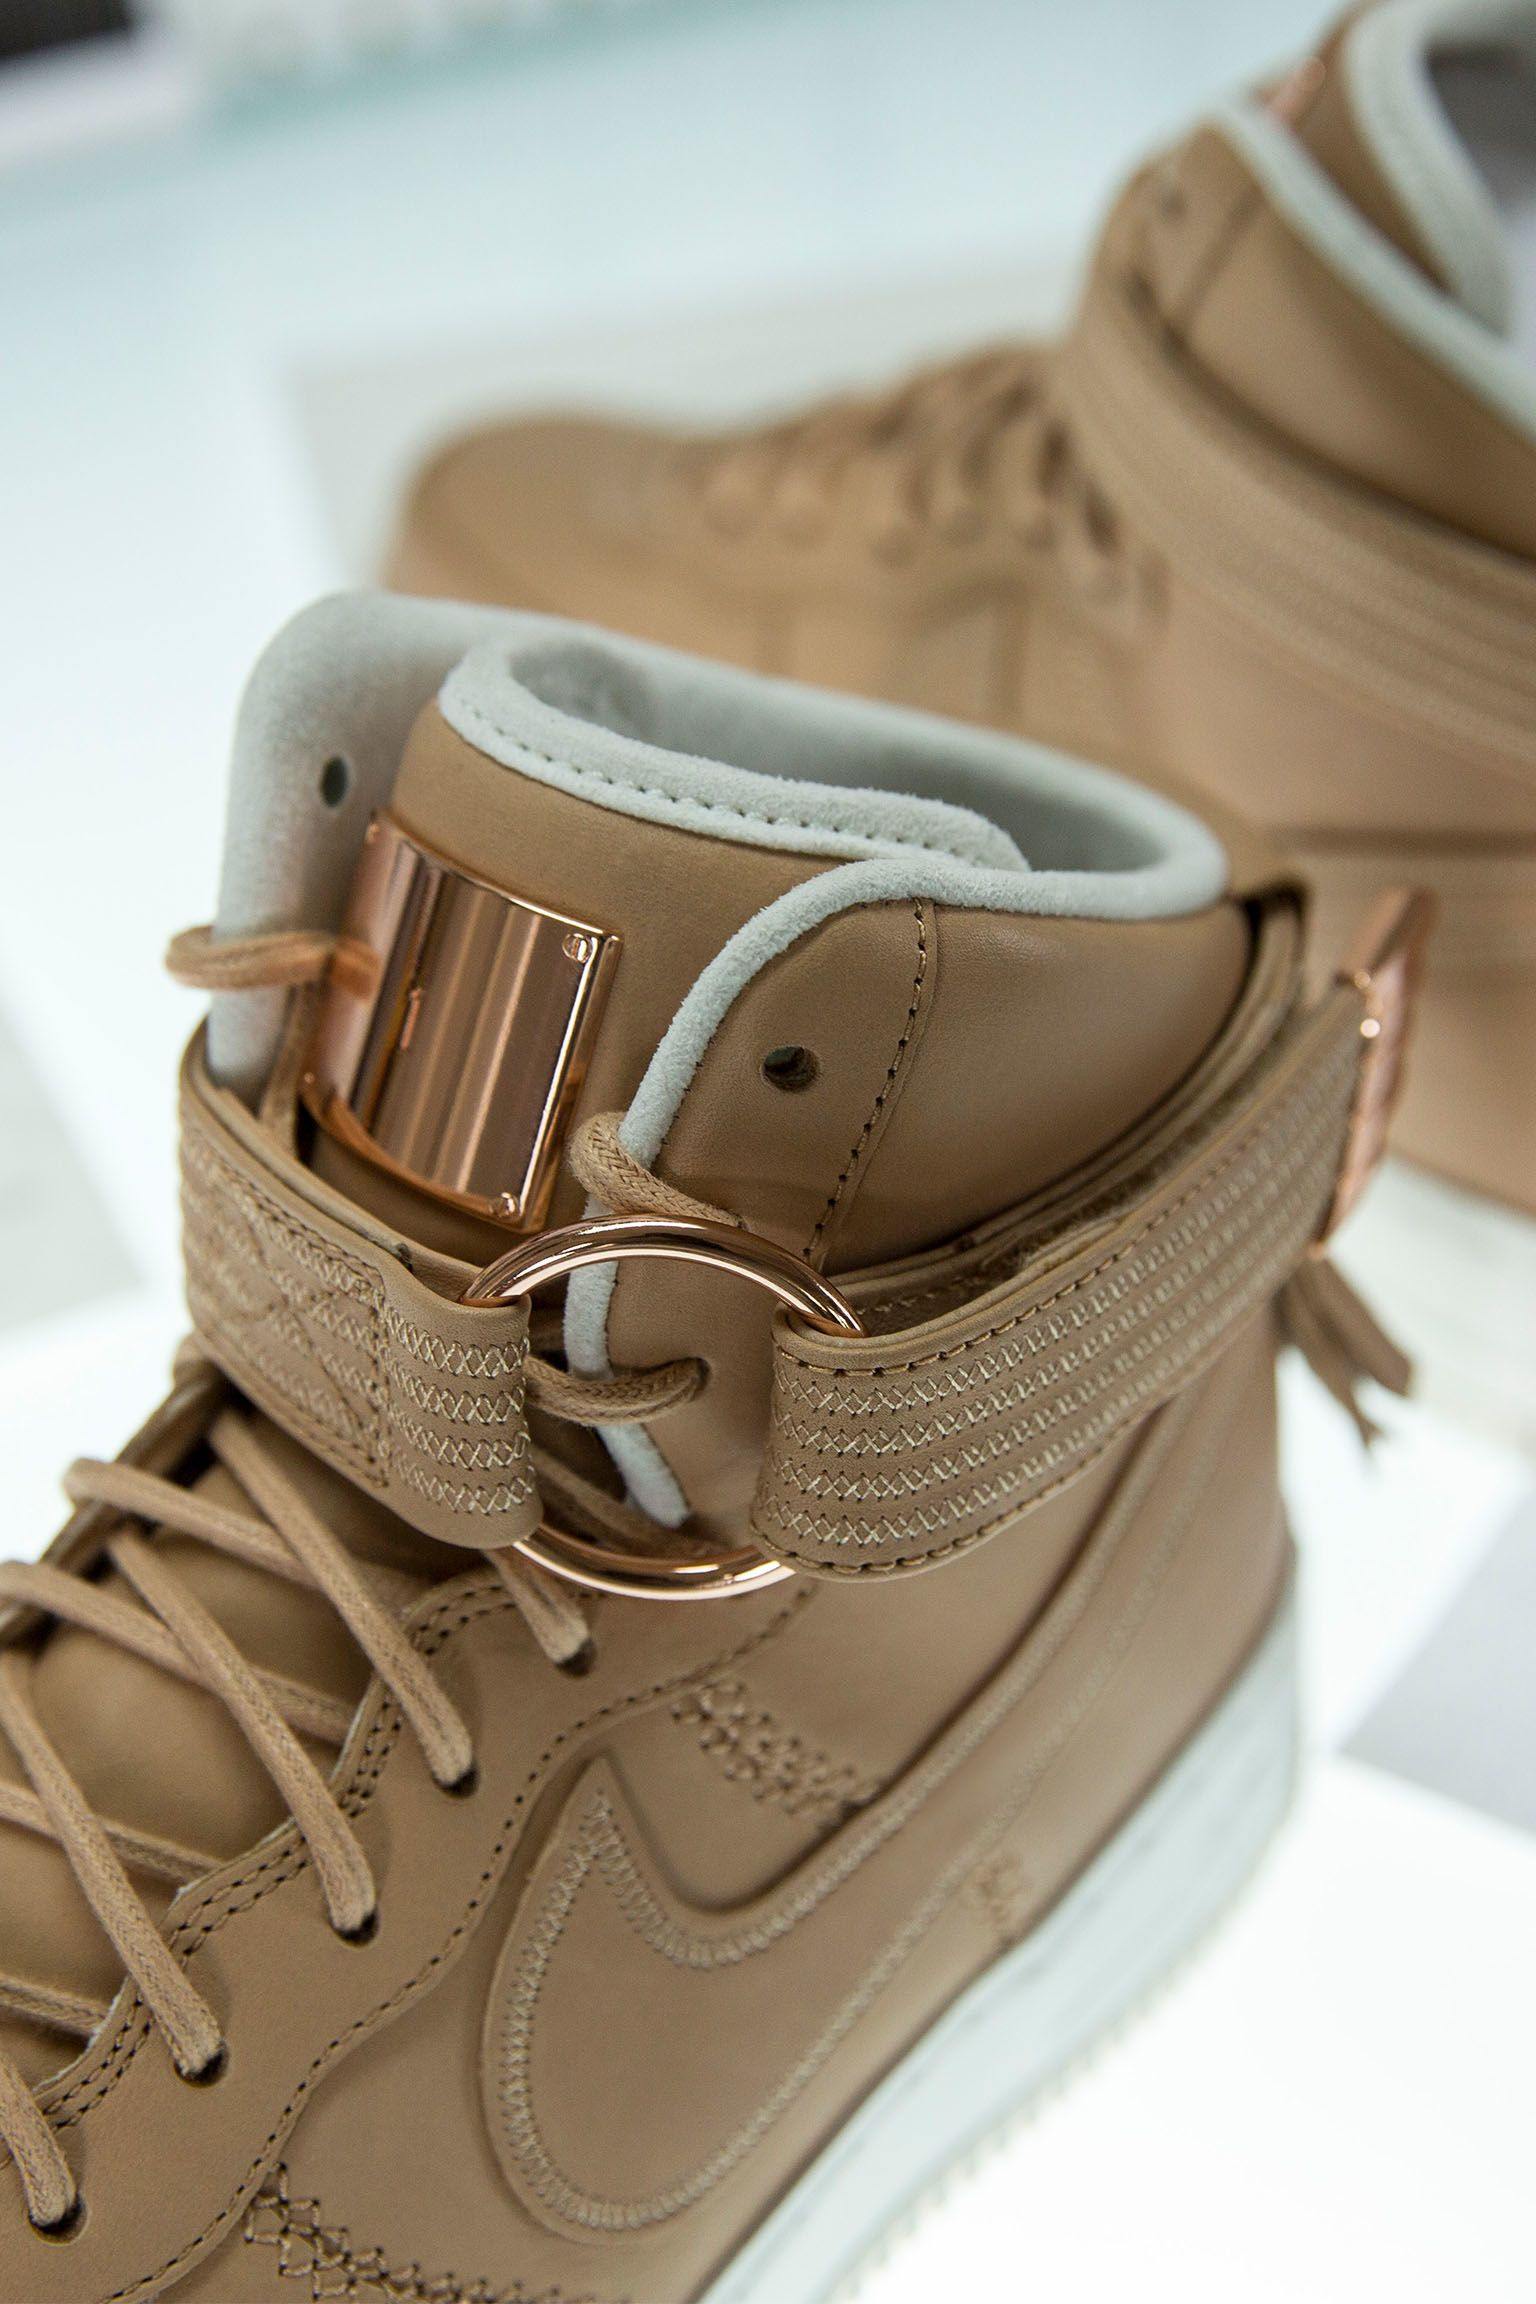 Tajemství designu: Nike Air Force 1 High Sport Luxury